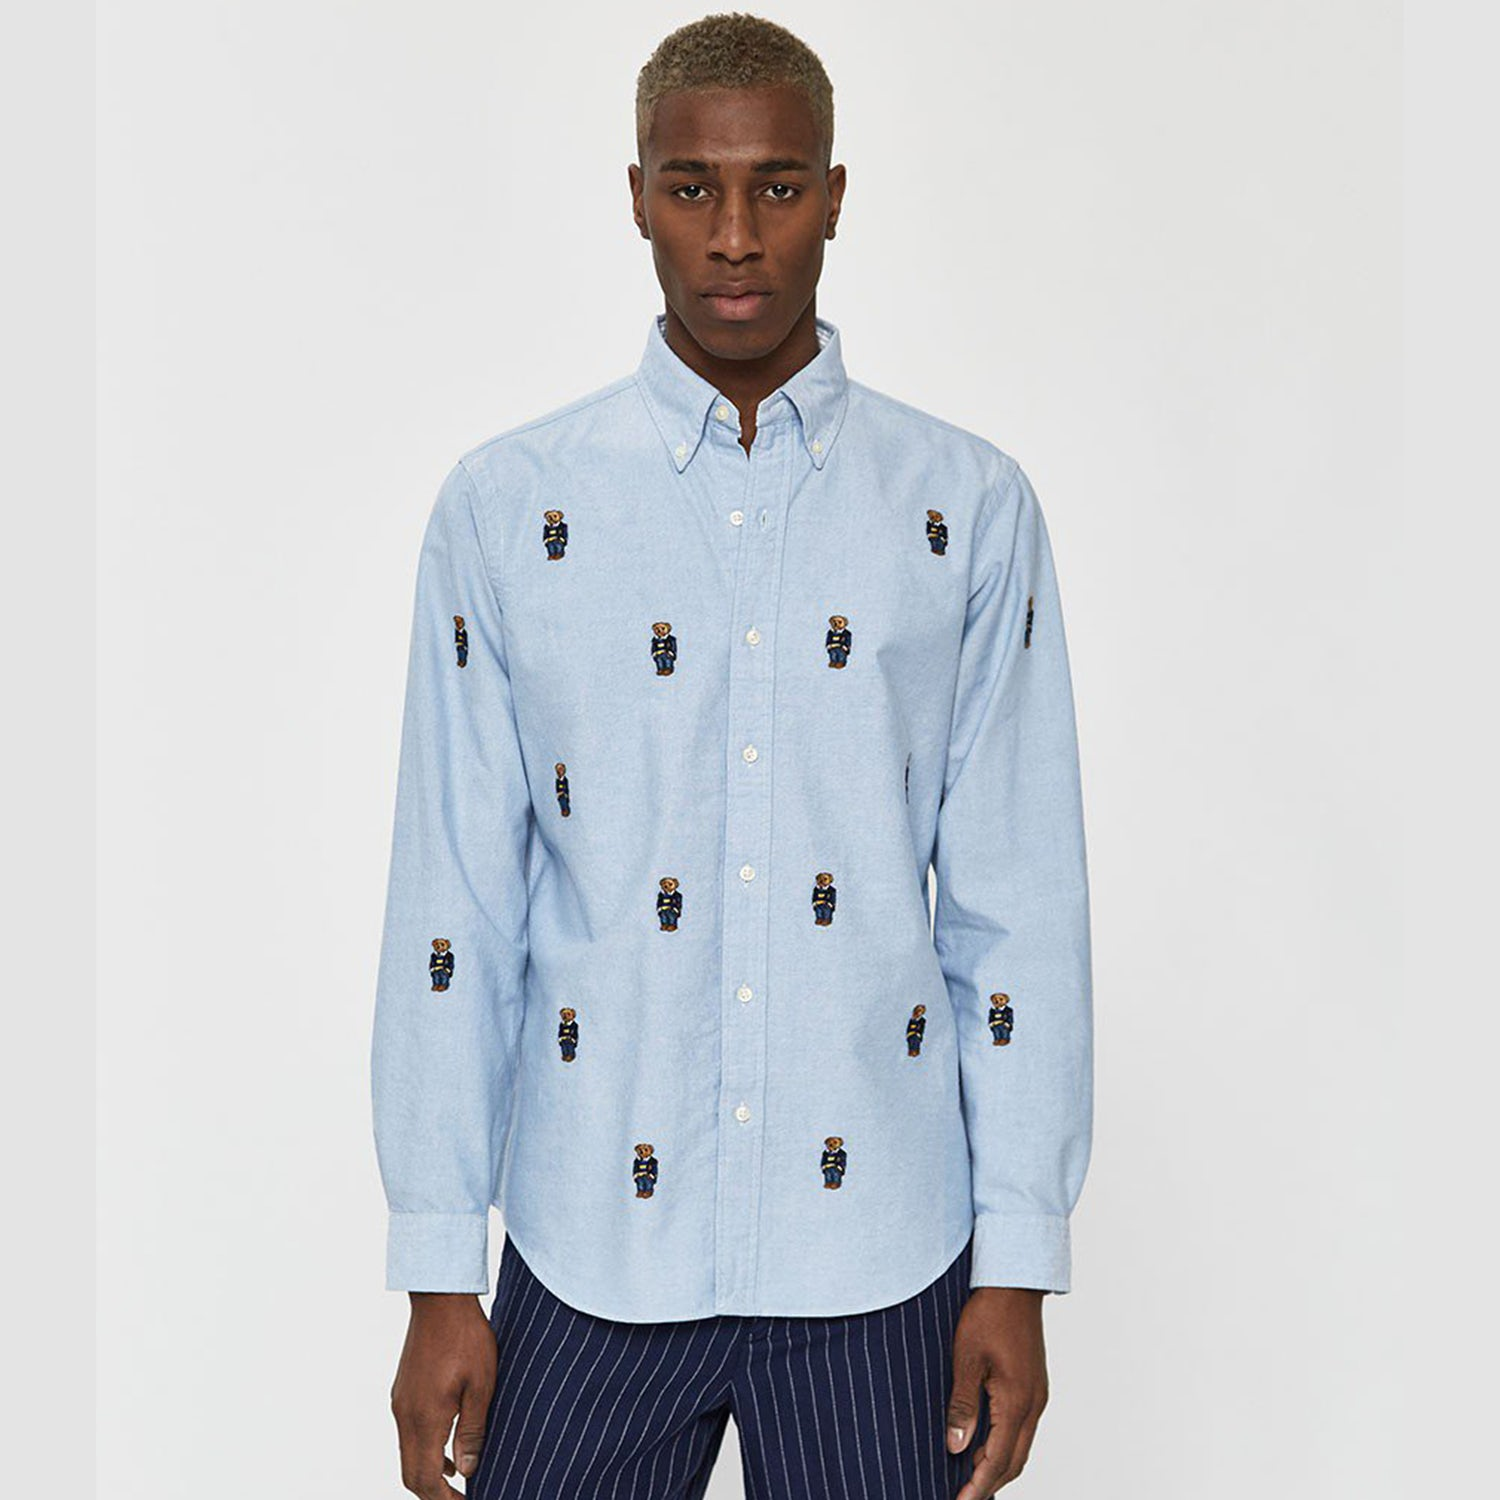 ralph lauren bear shirt